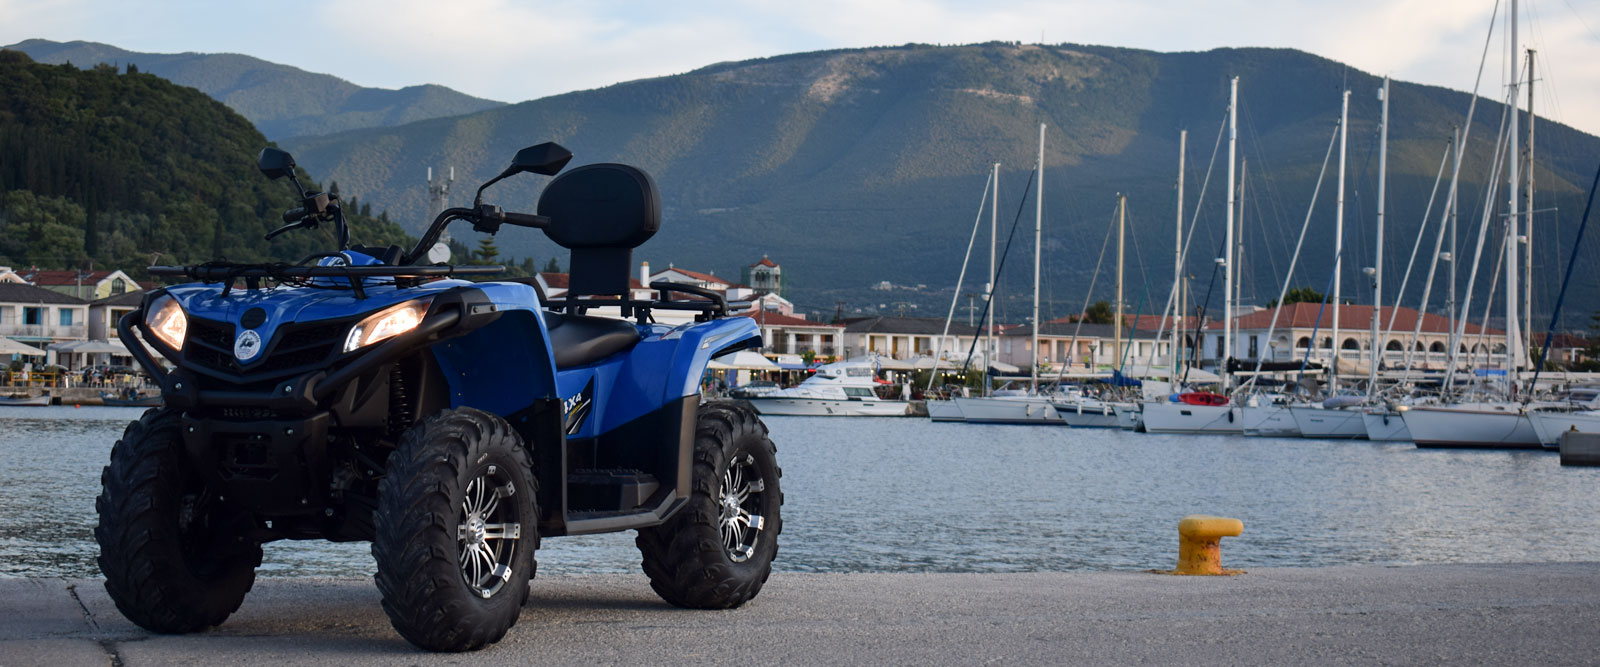 Quad & ATV Rental Kefalonia | Rent a Scooter or Quad Sami Kefalonia | Kefalonia Car & Moto Rentals Sami Kefalonia